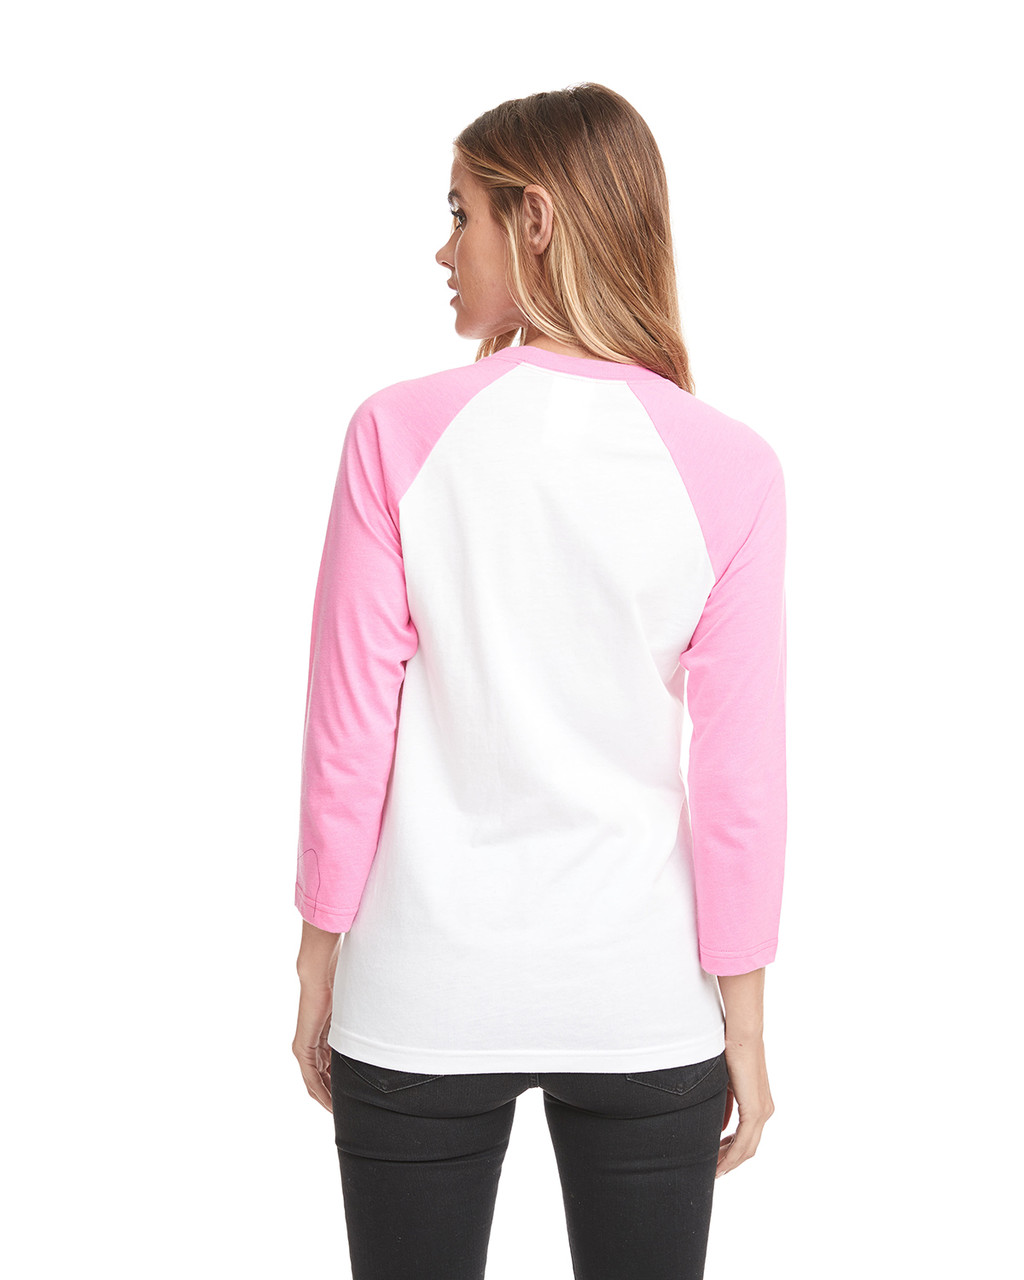 Hot Pink/White - Back, 6251 Next Level Unisex CVC 3/4 Sleeve Raglan Baseball T-Shirt | BlankClothing.ca